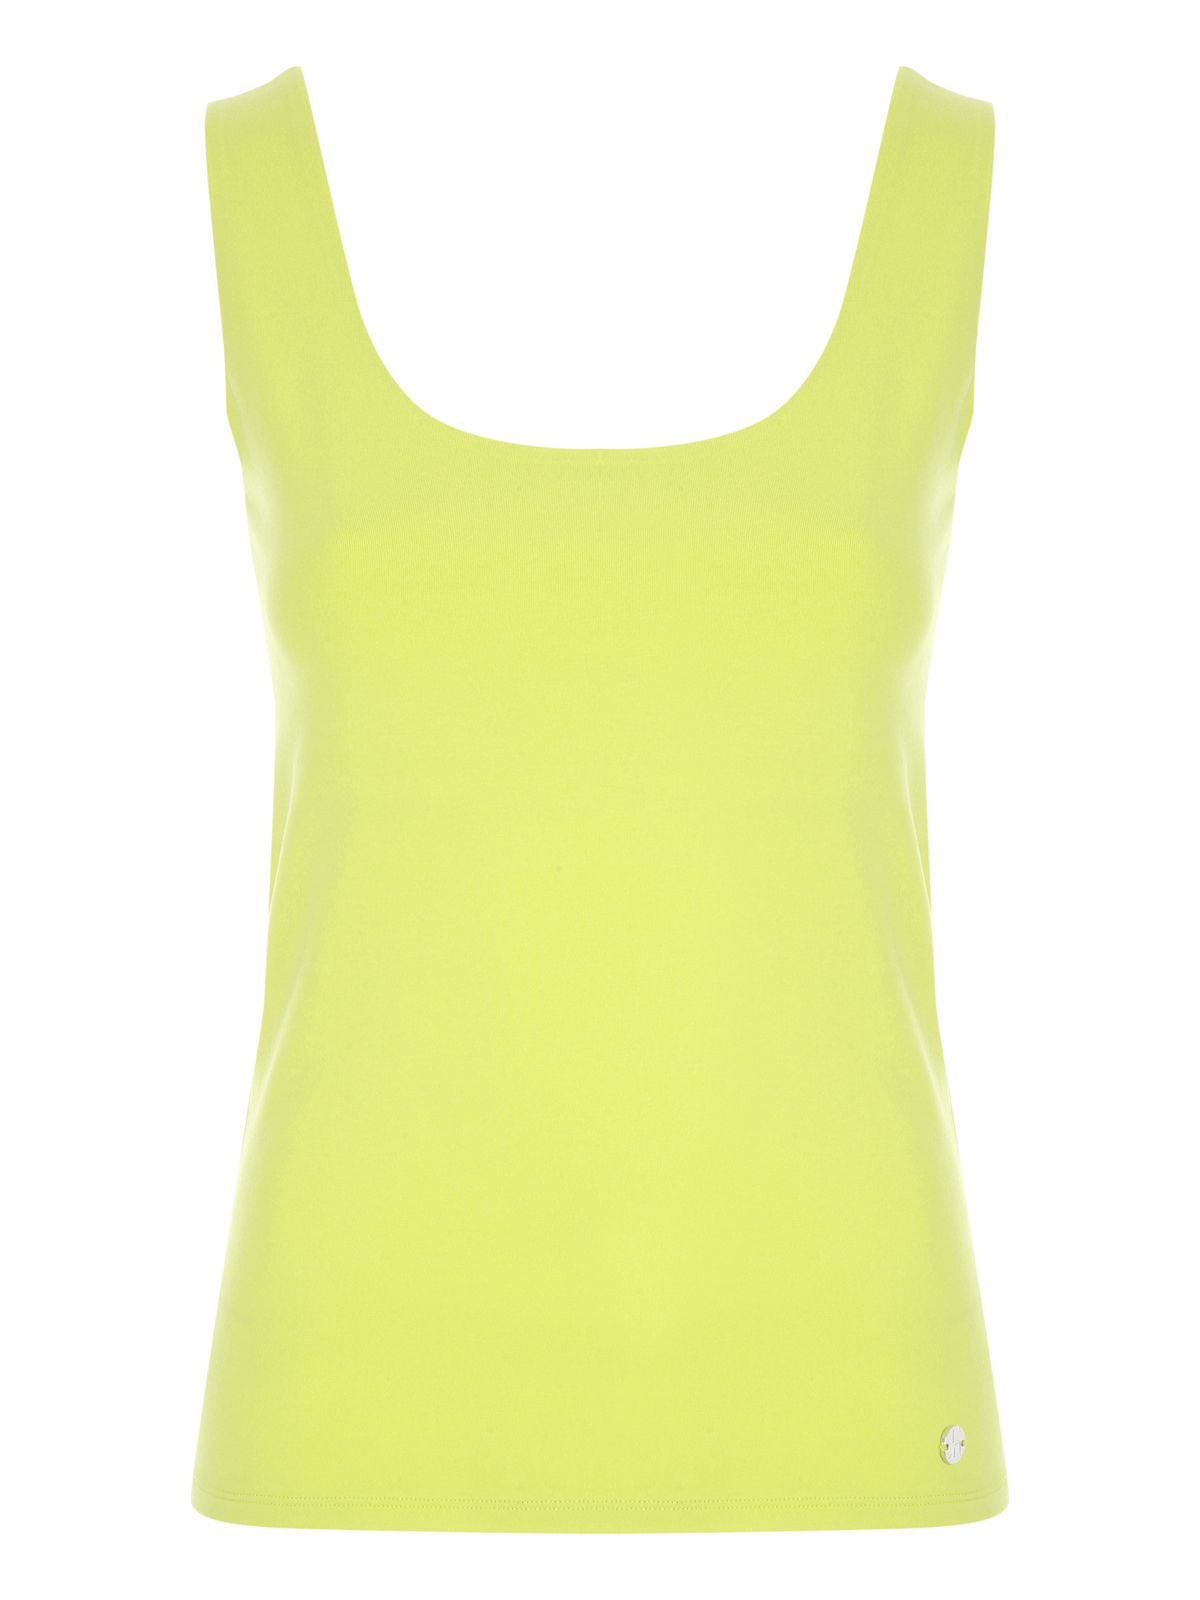 Jane Norman Bust Support Vest, Yellow